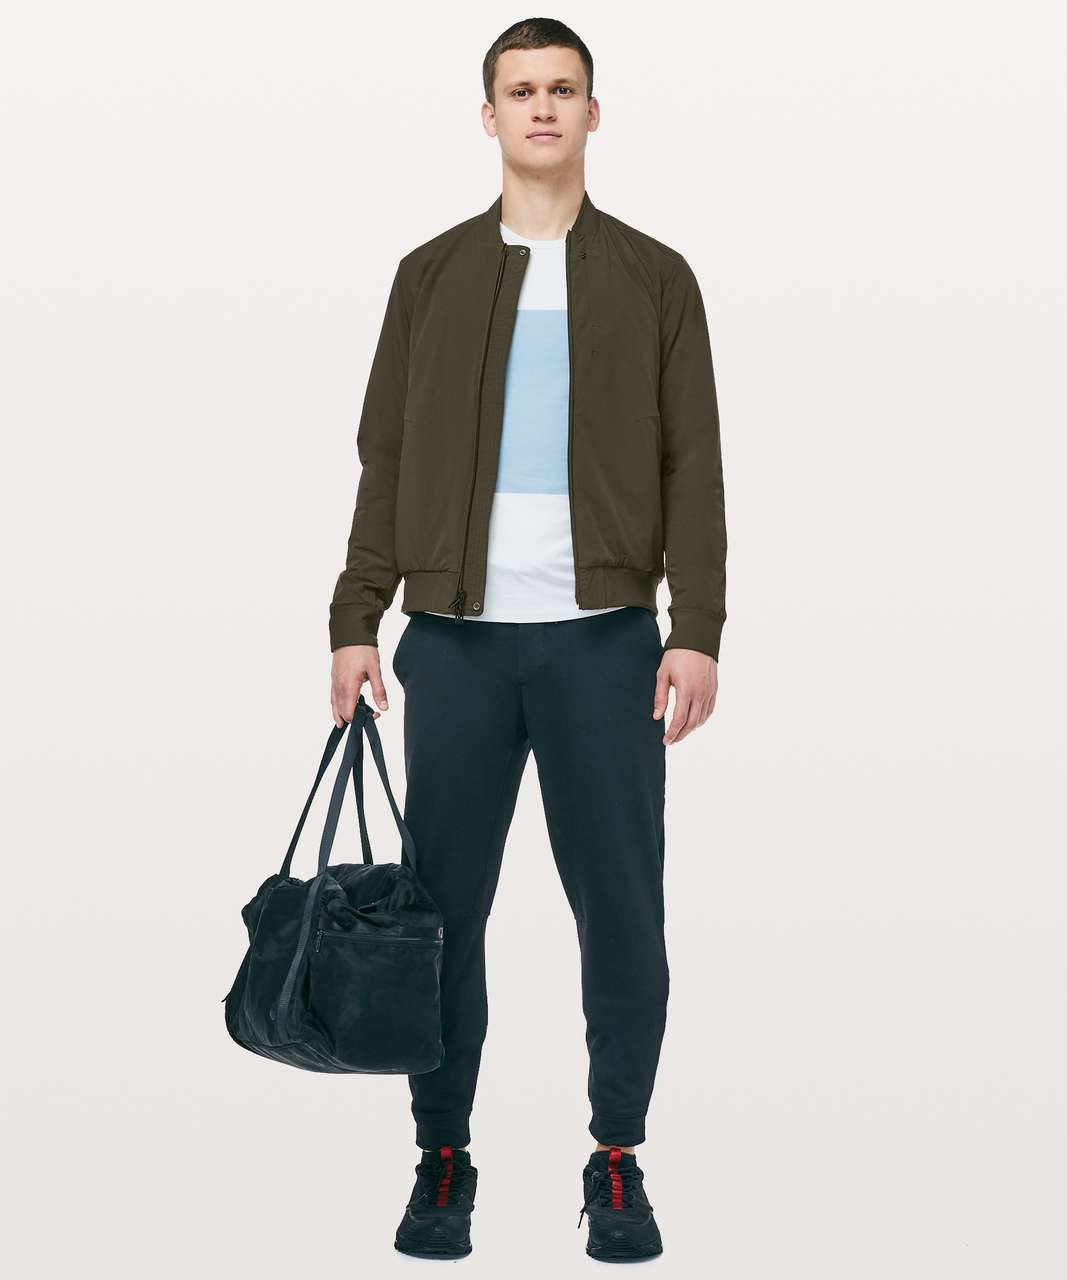 Lululemon Switch Over Bomber - Dark Olive